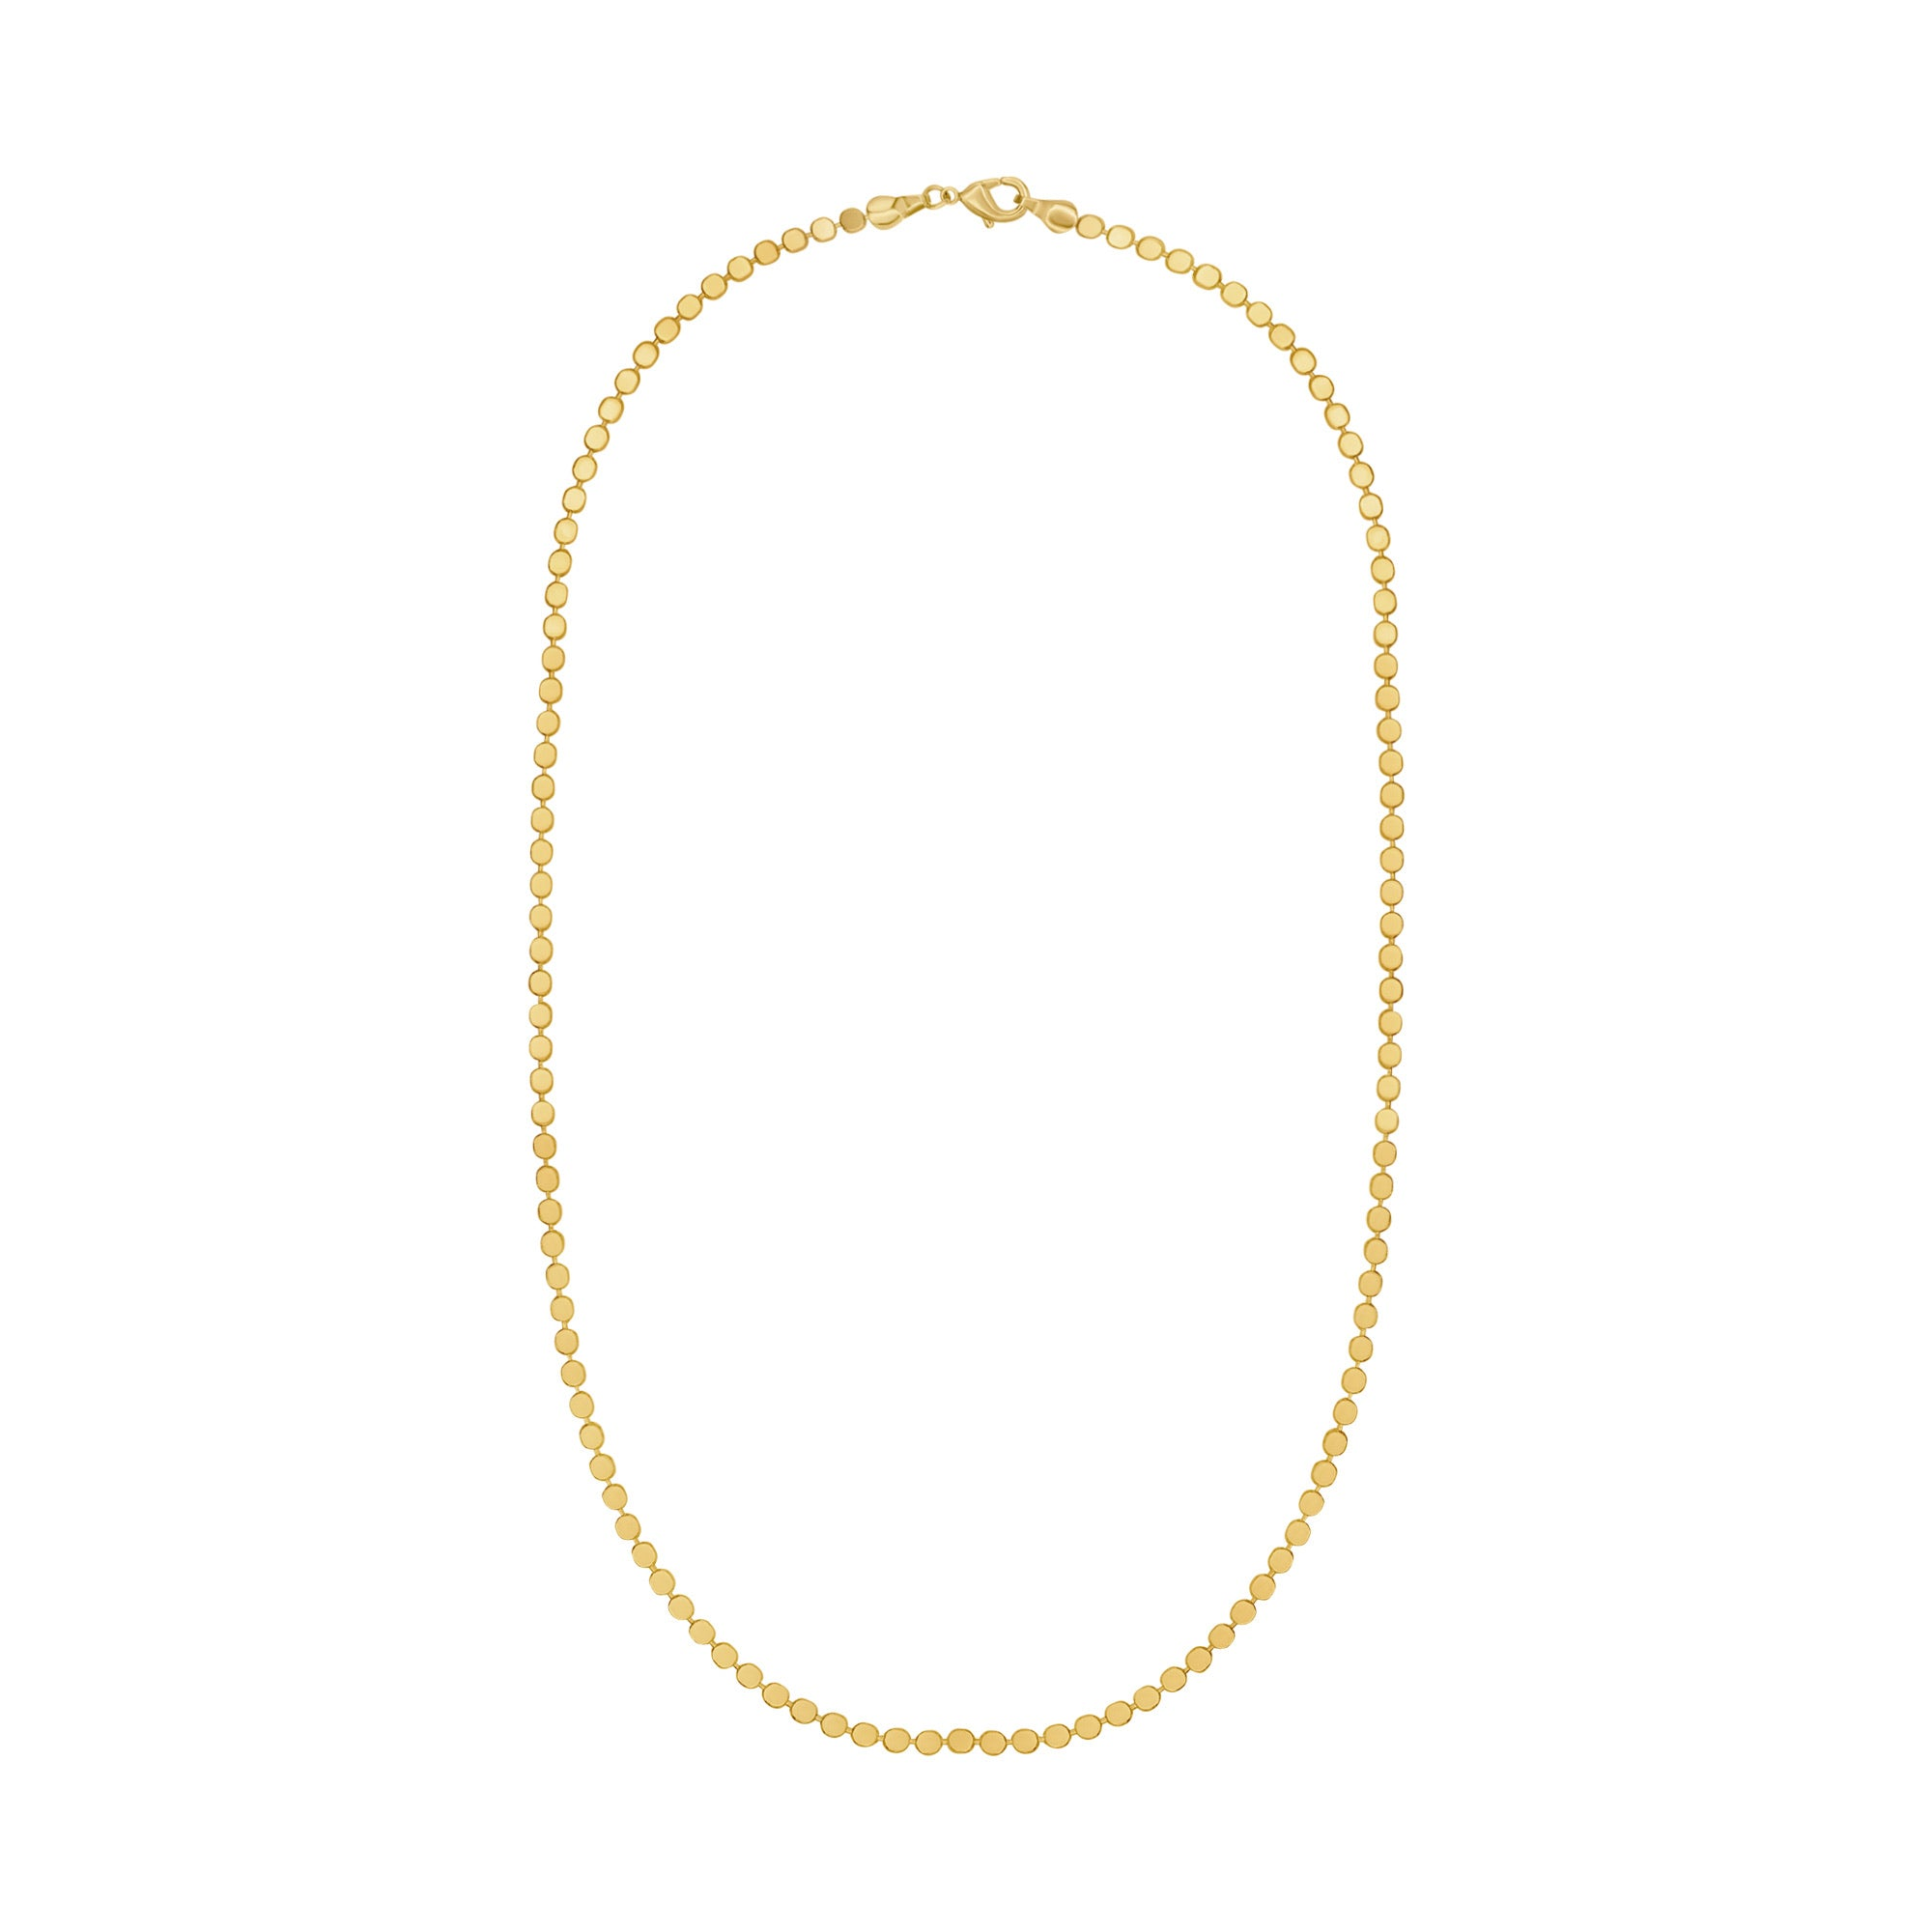 Palladio necklace